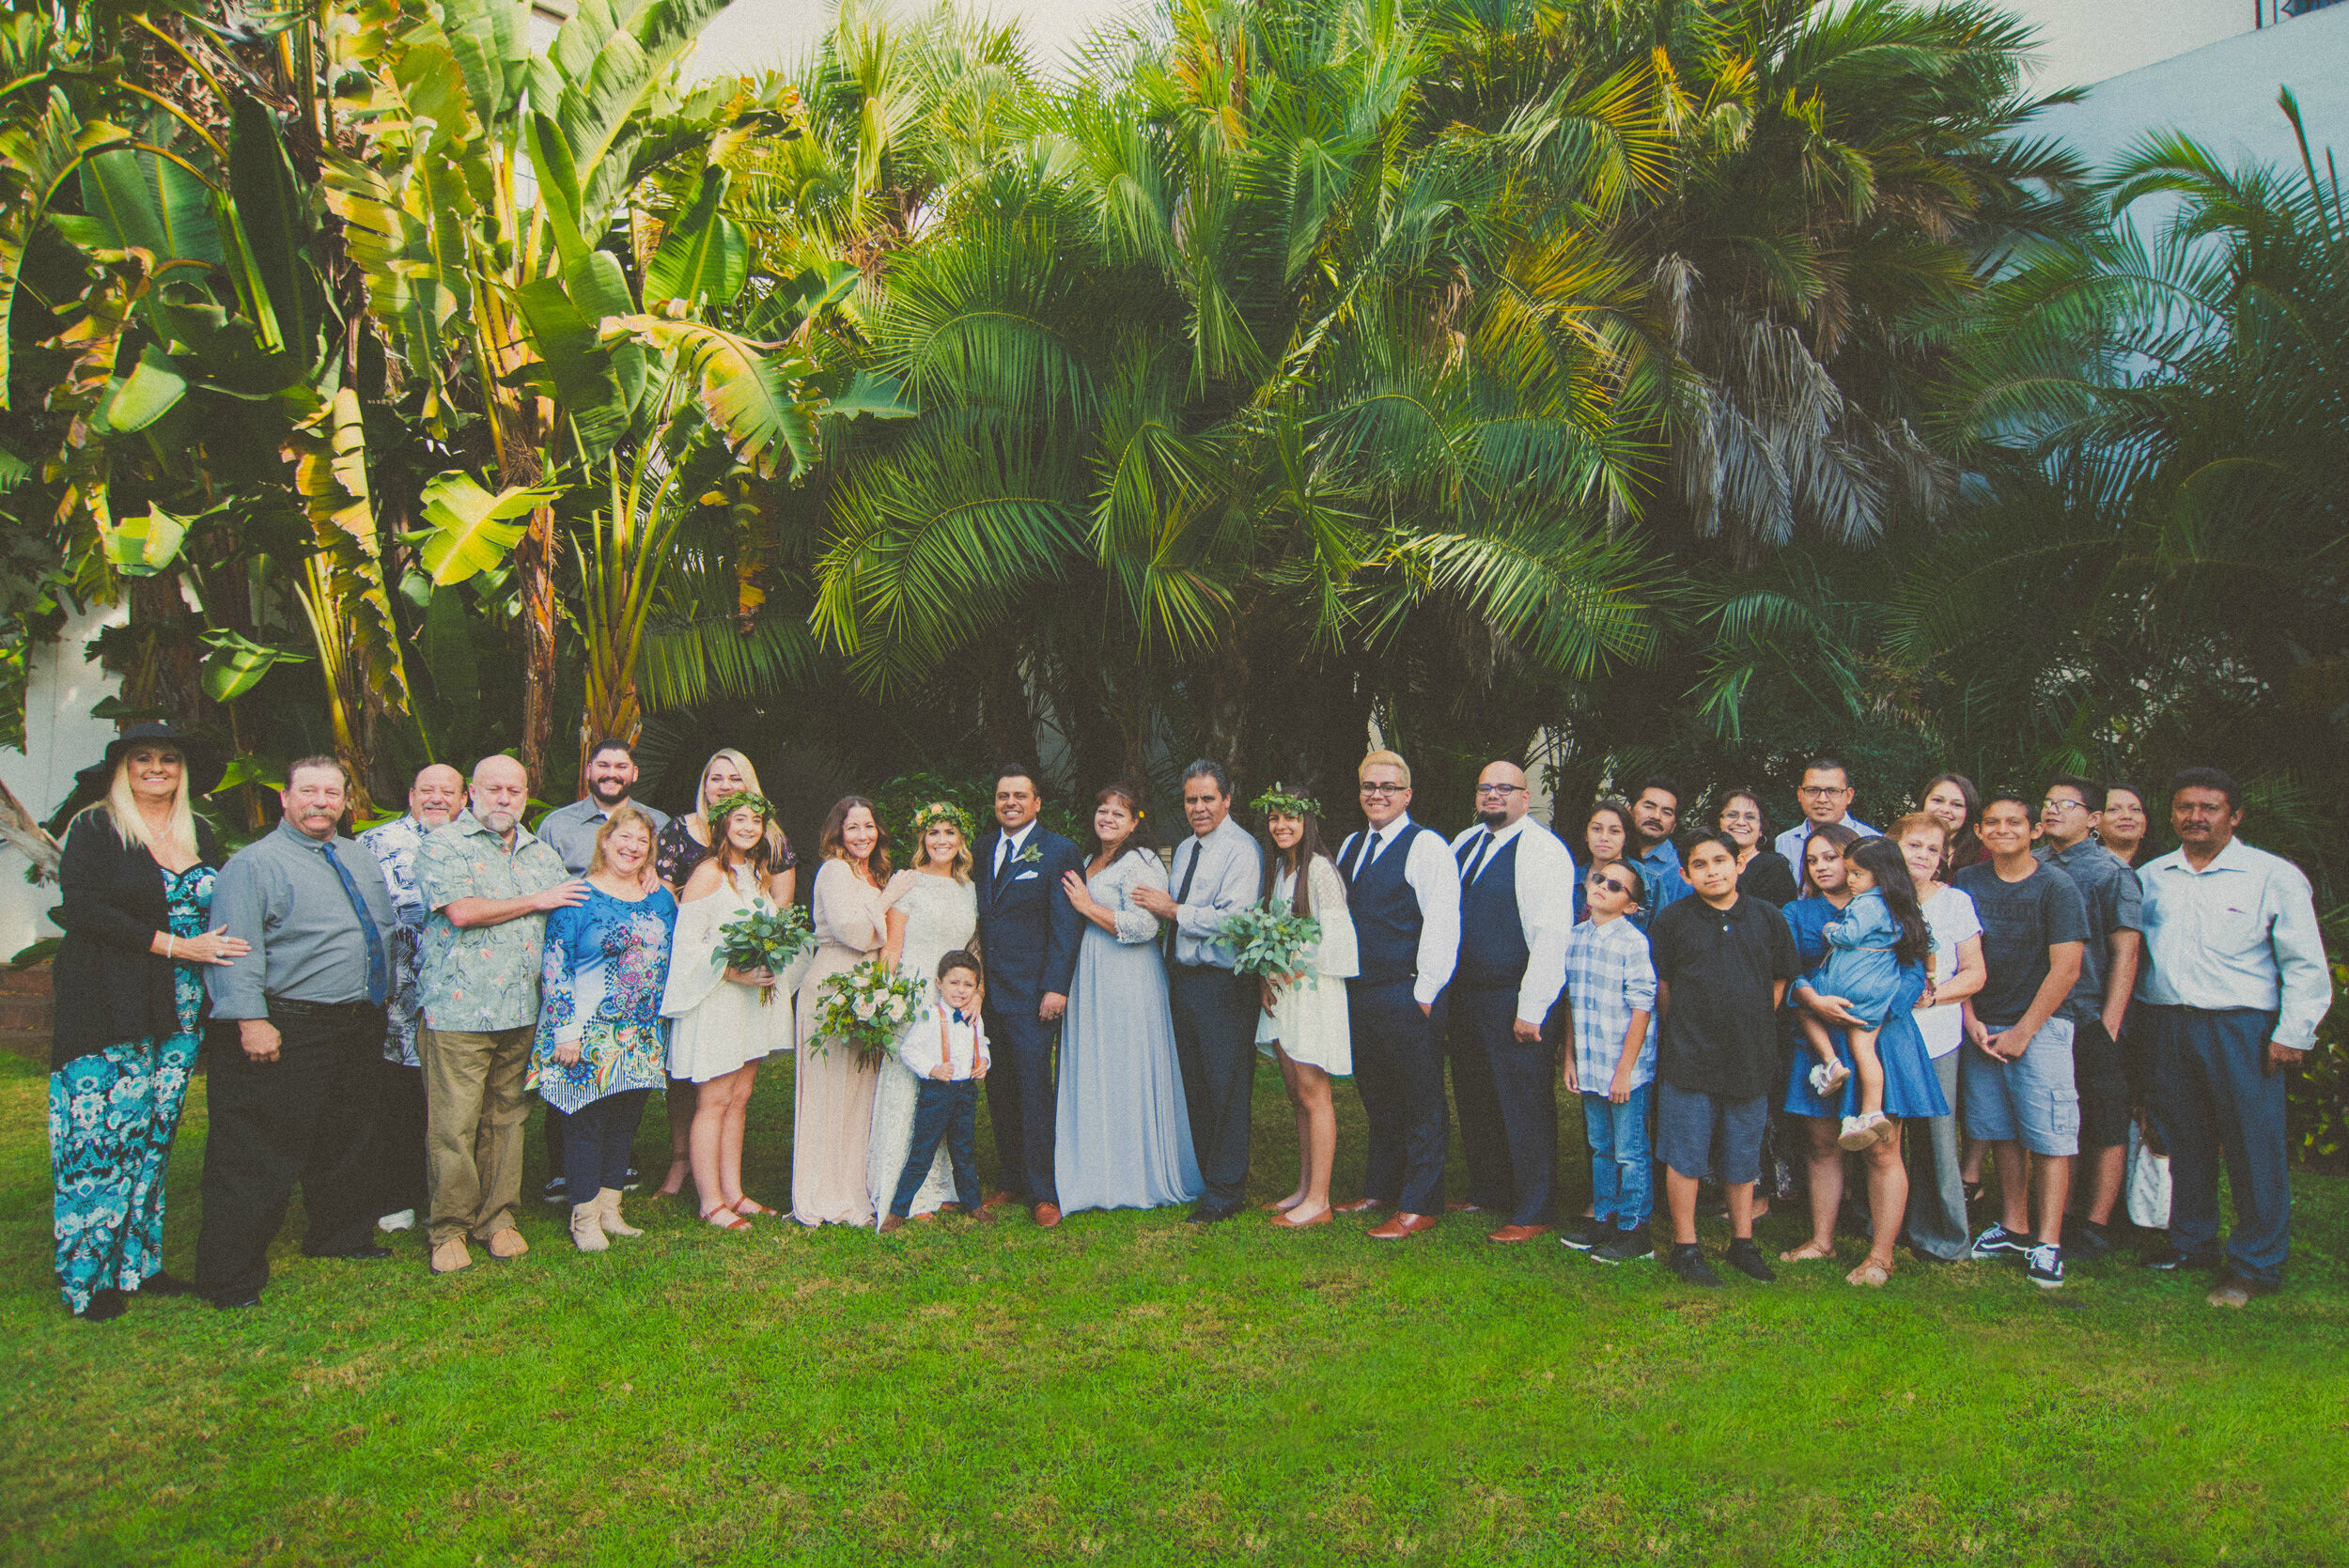 Trejo Wedding - Family-Friend Portraits-65.jpg